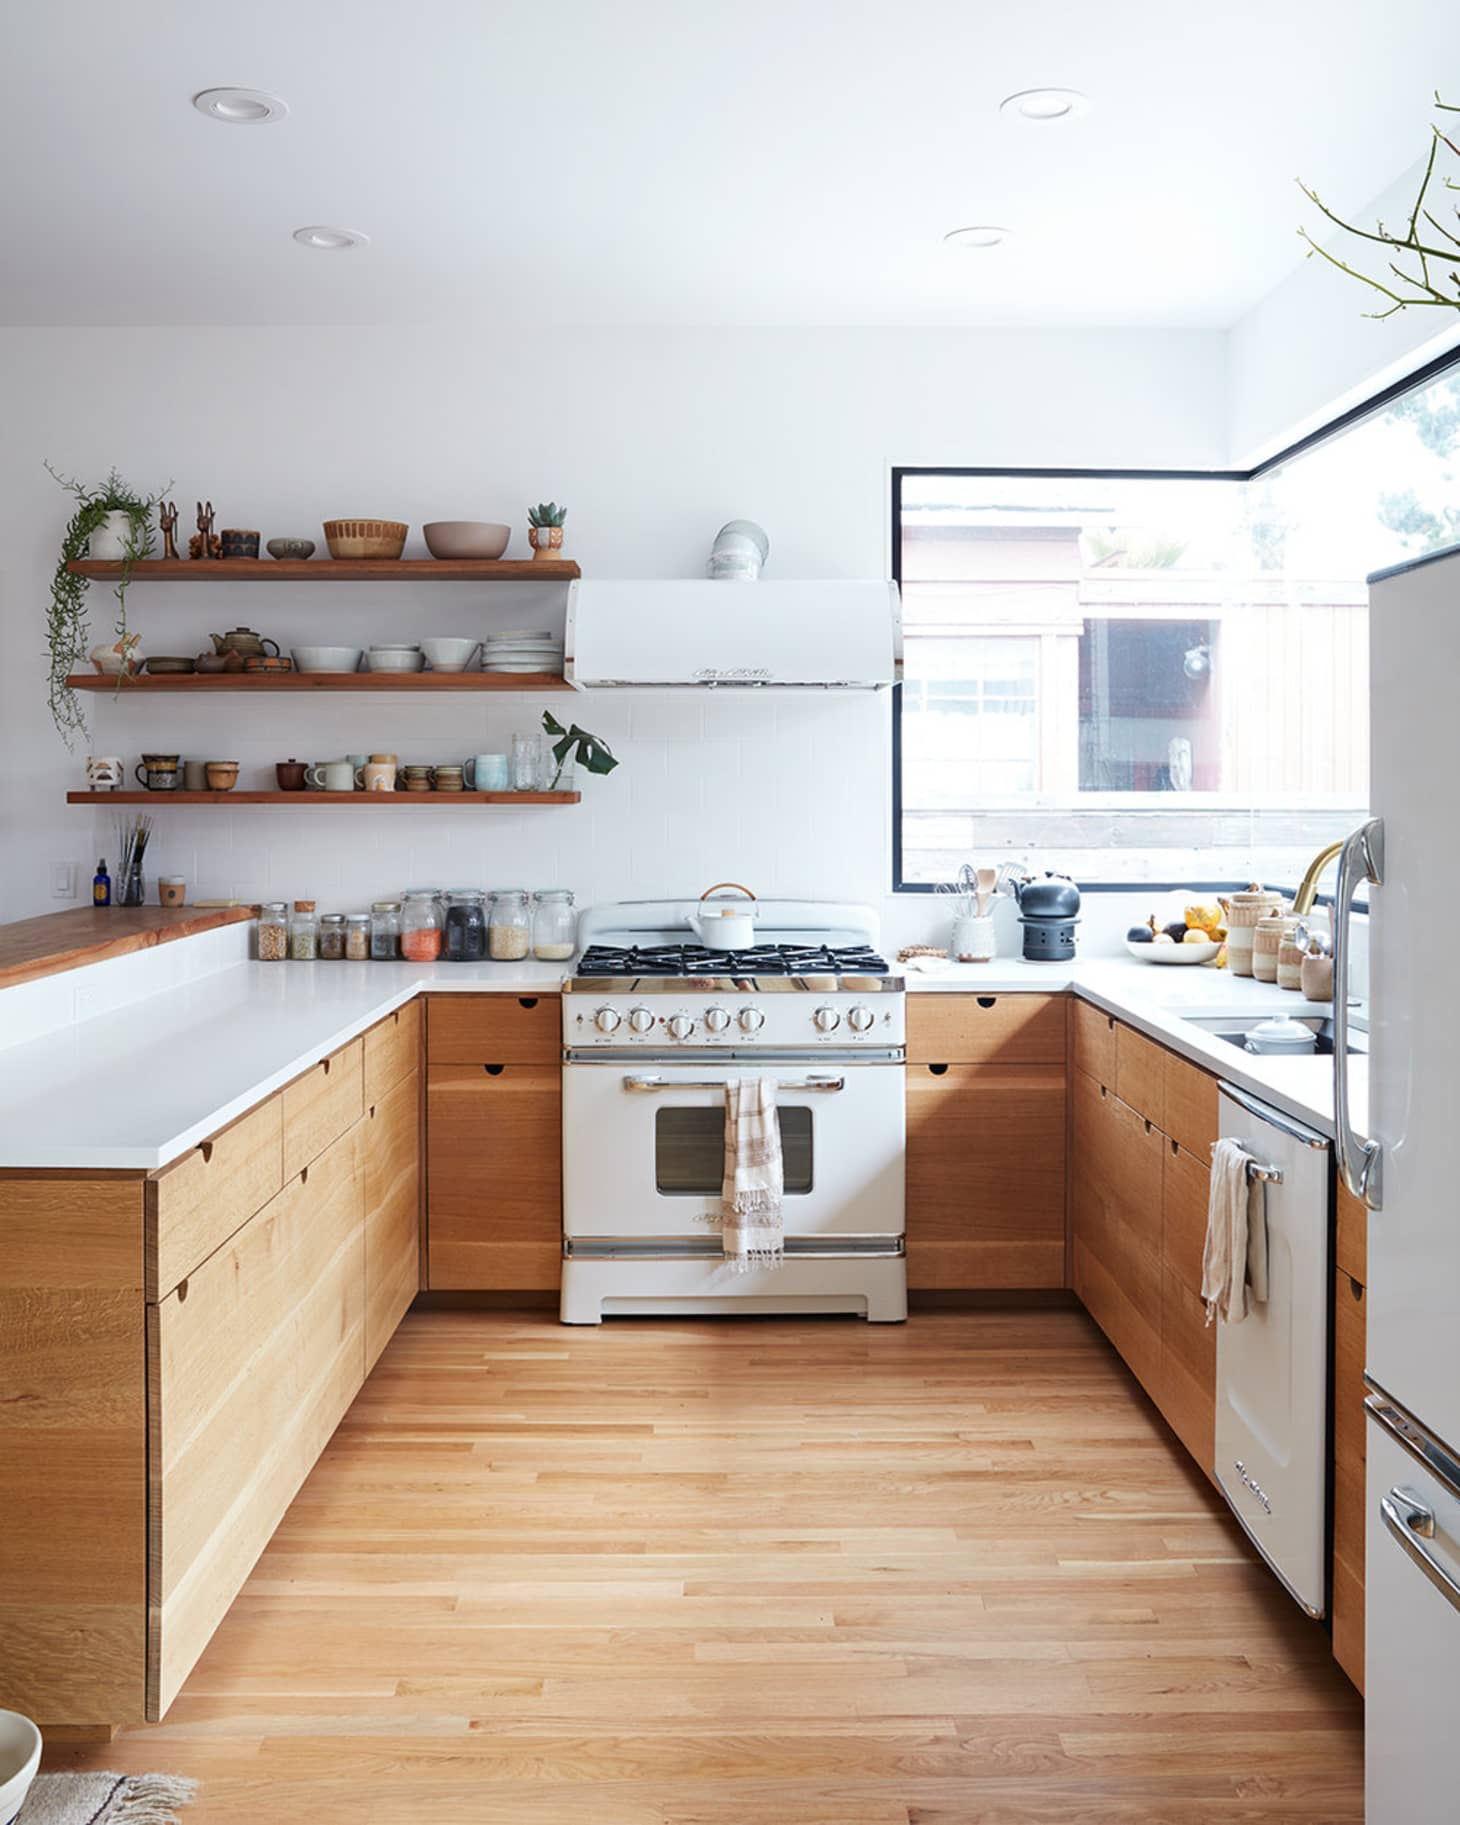 No Kitchen Cabinet Ideas: Kitchens Without Upper Cabinets: Should You Go Without